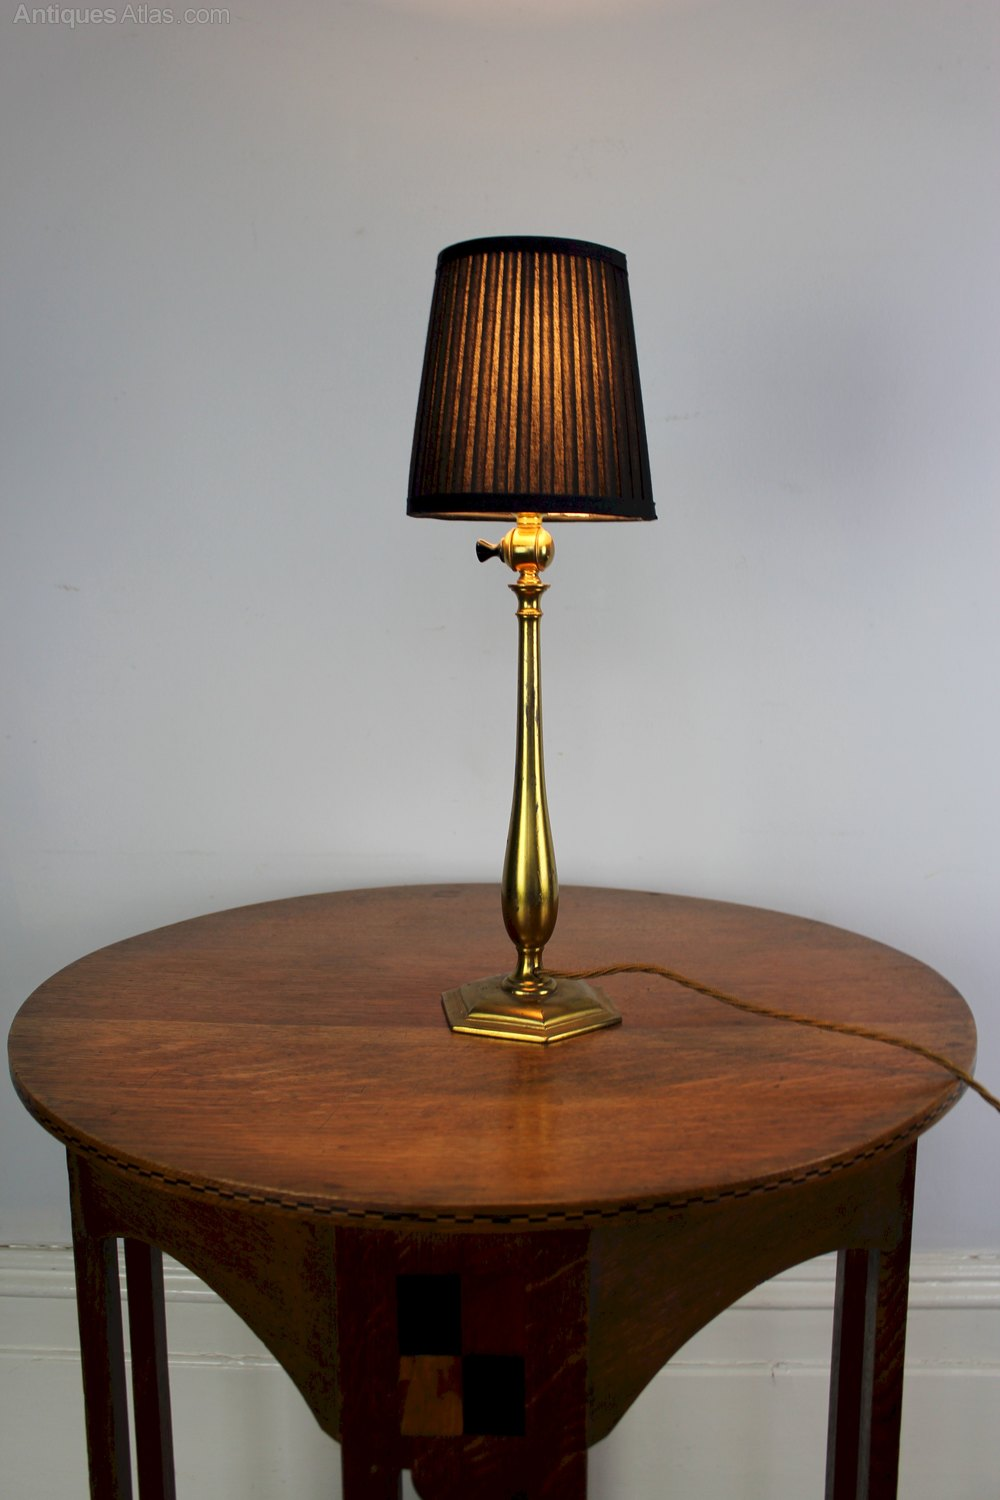 arts and crafts period brass table lamp by faraday and son london. Black Bedroom Furniture Sets. Home Design Ideas